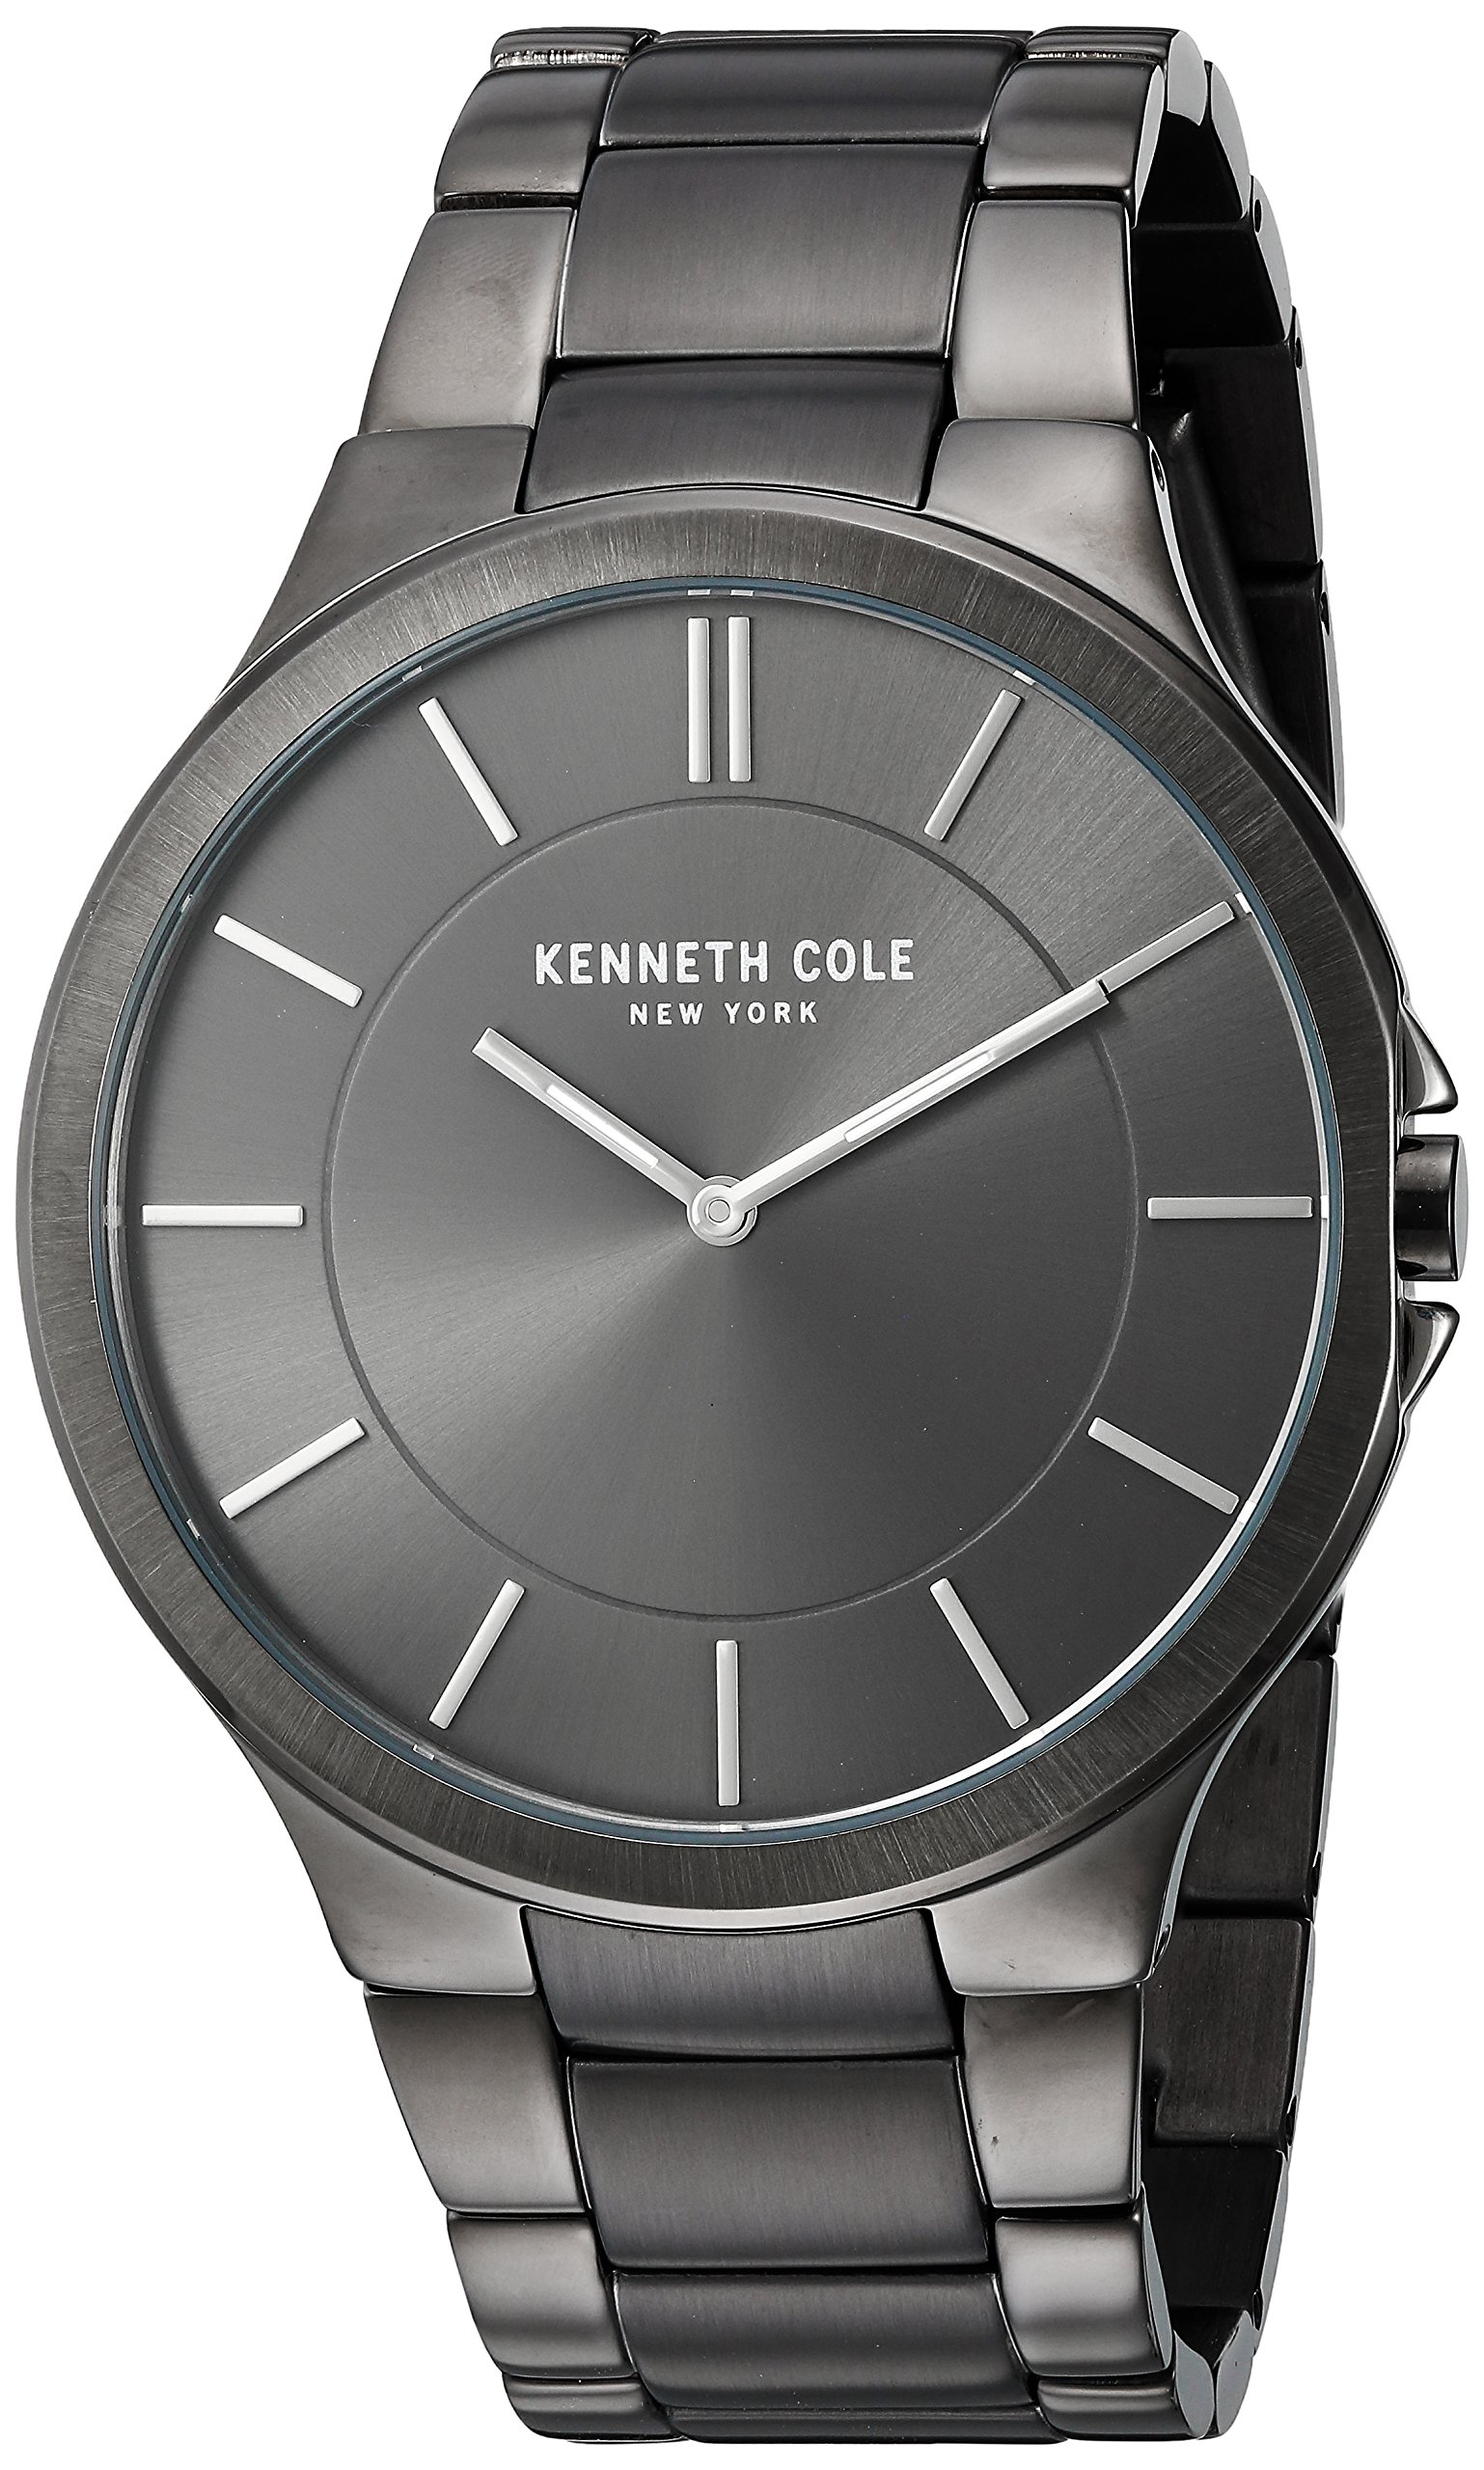 Kenneth Cole New York Men's KC9109 ''Slim Trip'' Stainless Steel Watch